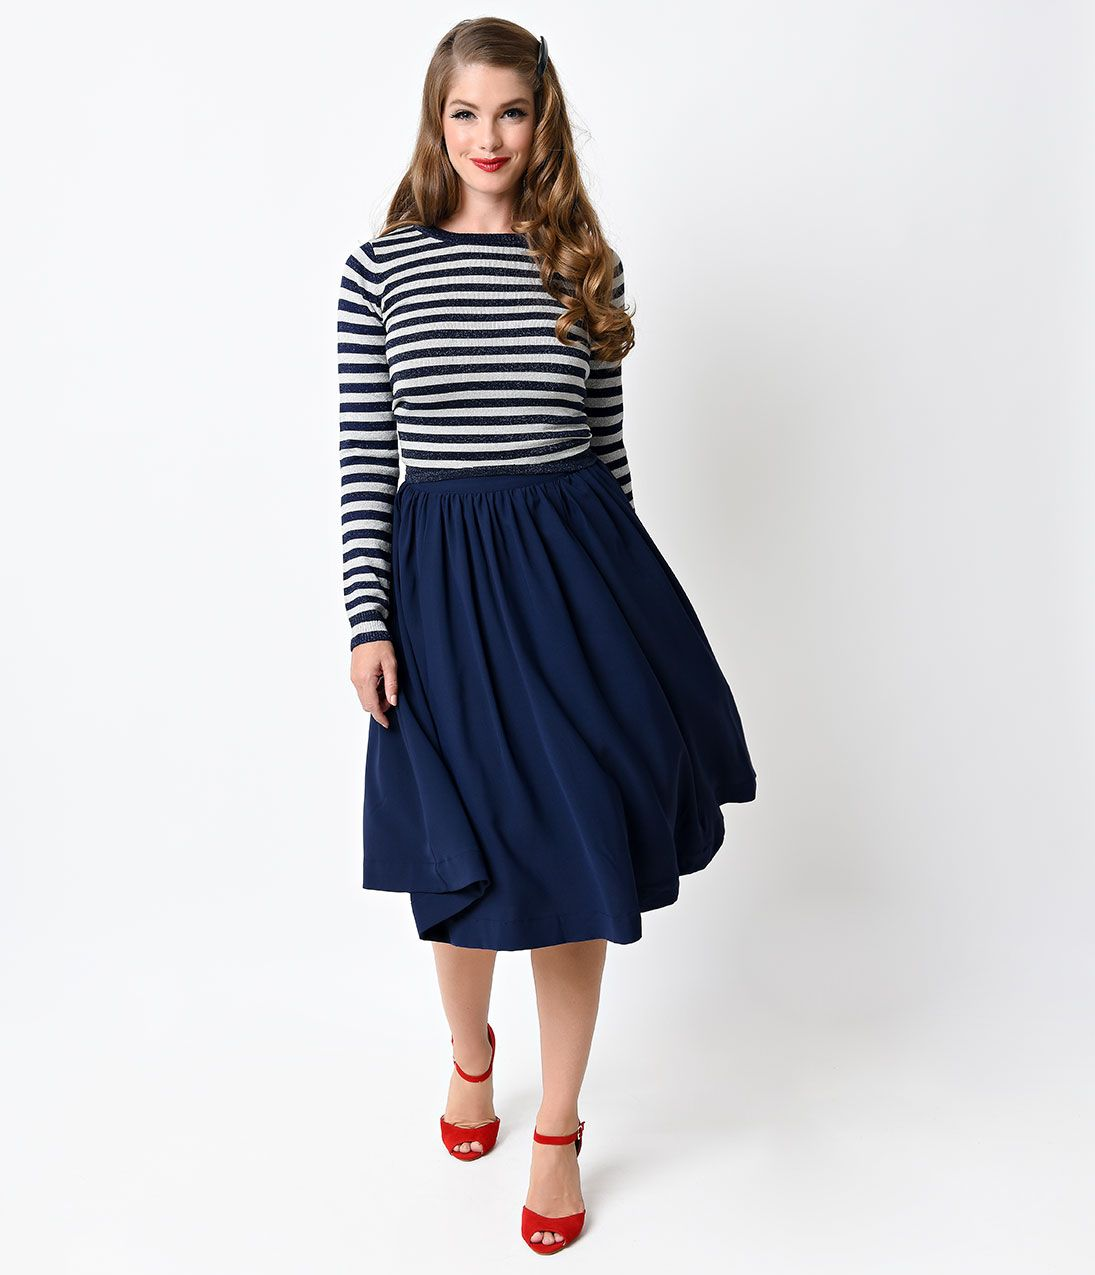 1950s Style Navy Blue Woven High Waist Swing Skirt $42.00 AT vintagedancer.com